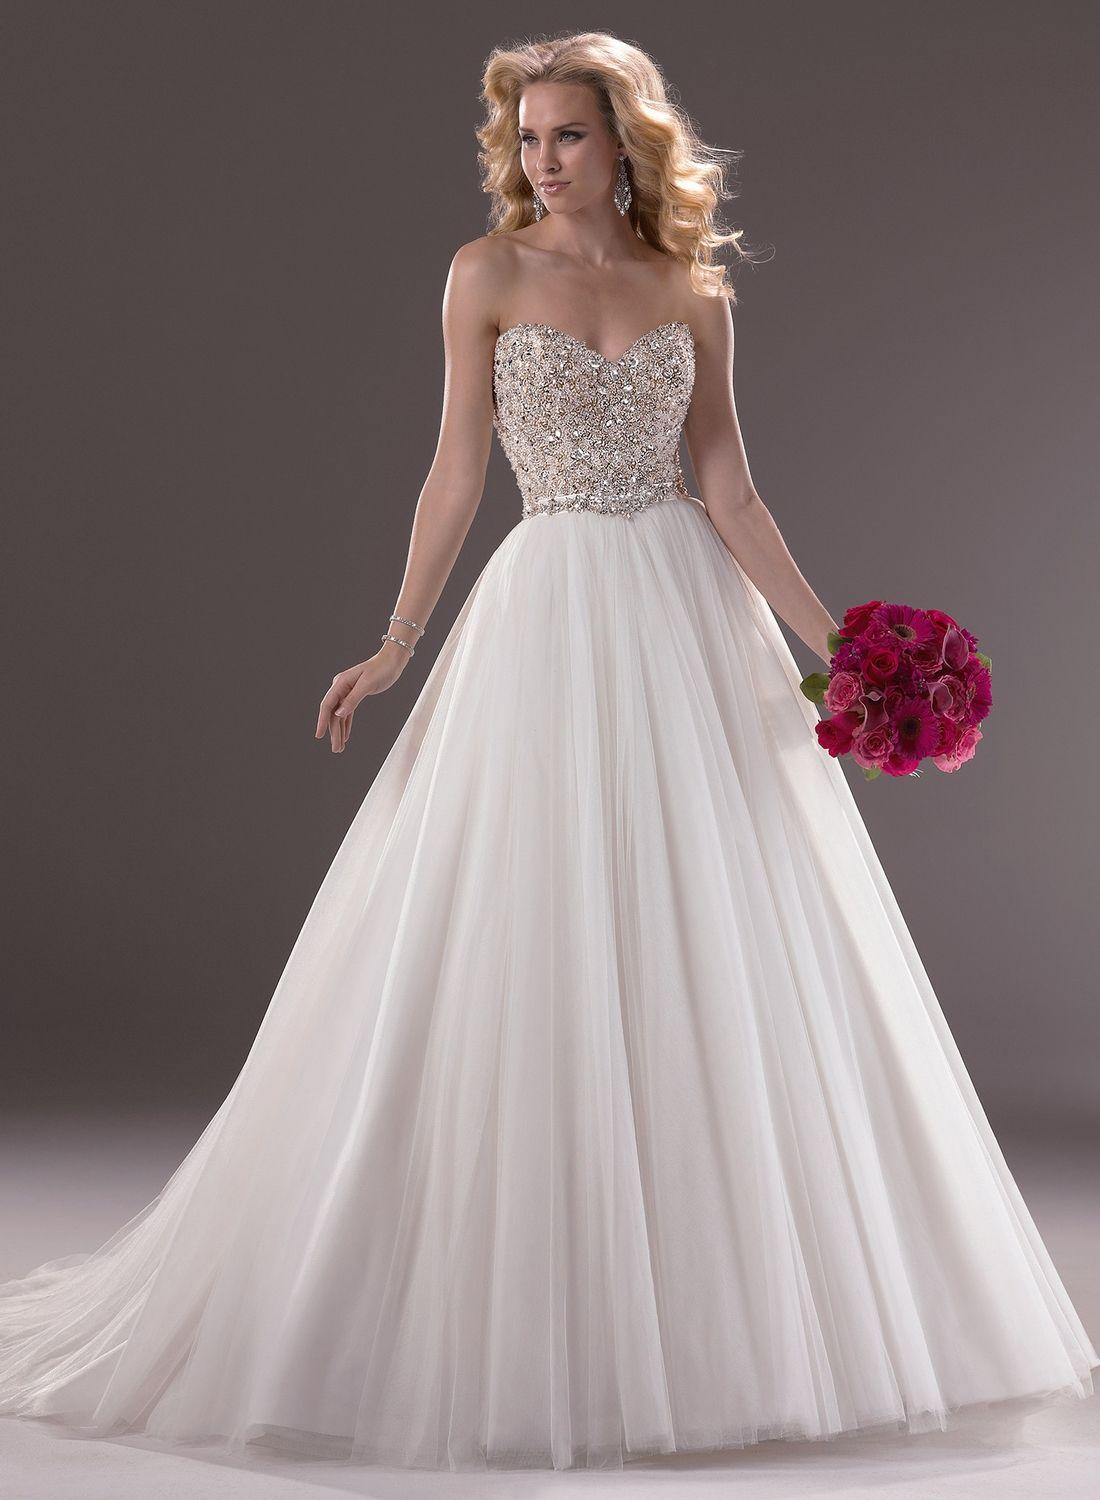 Bridal Gowns: Maggie Sottero Princess/Ball Gown Wedding Dress with ...